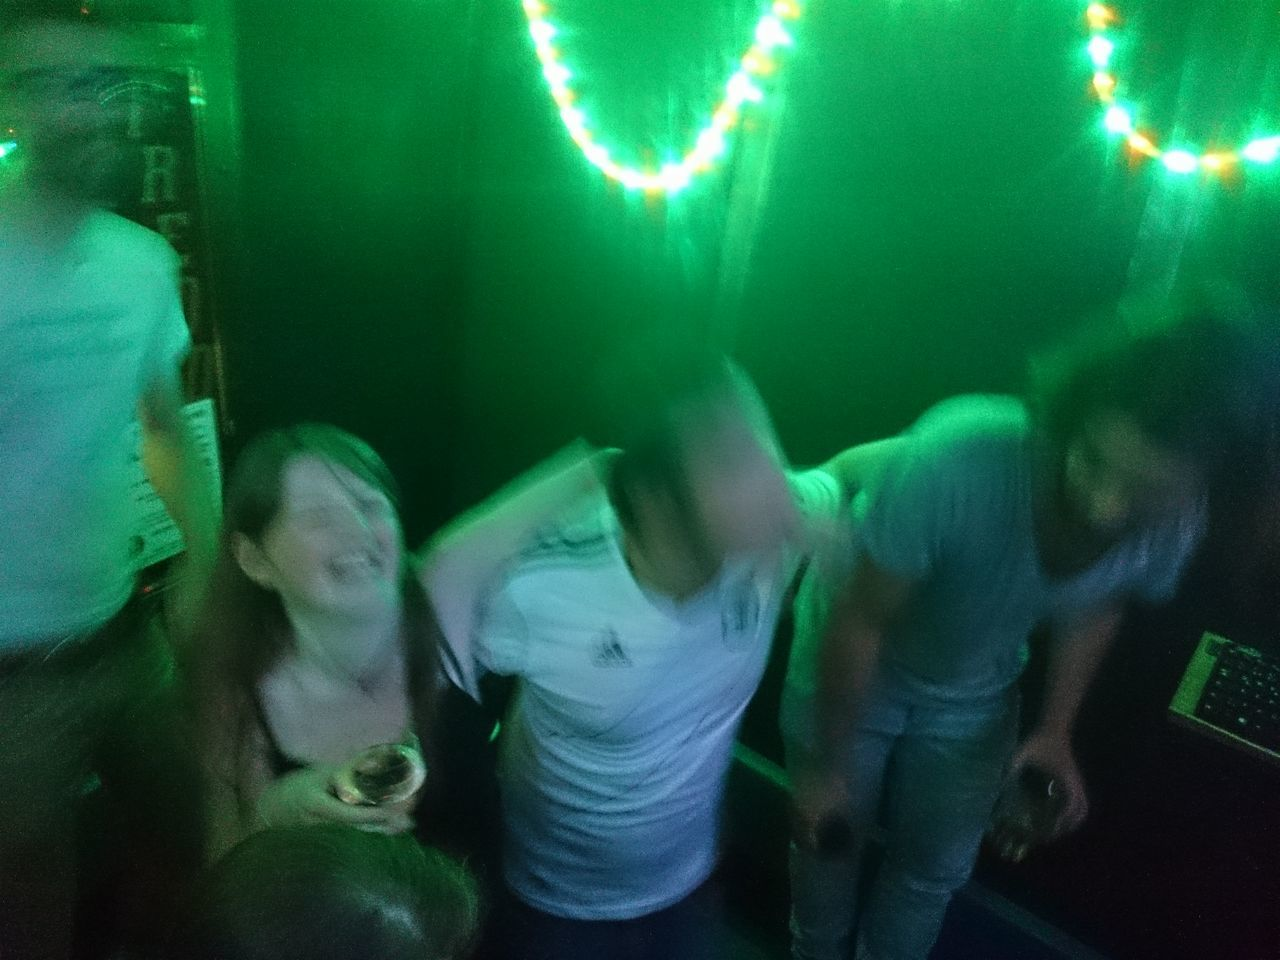 illuminated, green color, night, indoors, real people, nightlife, young adult, nightclub, close-up, one person, people